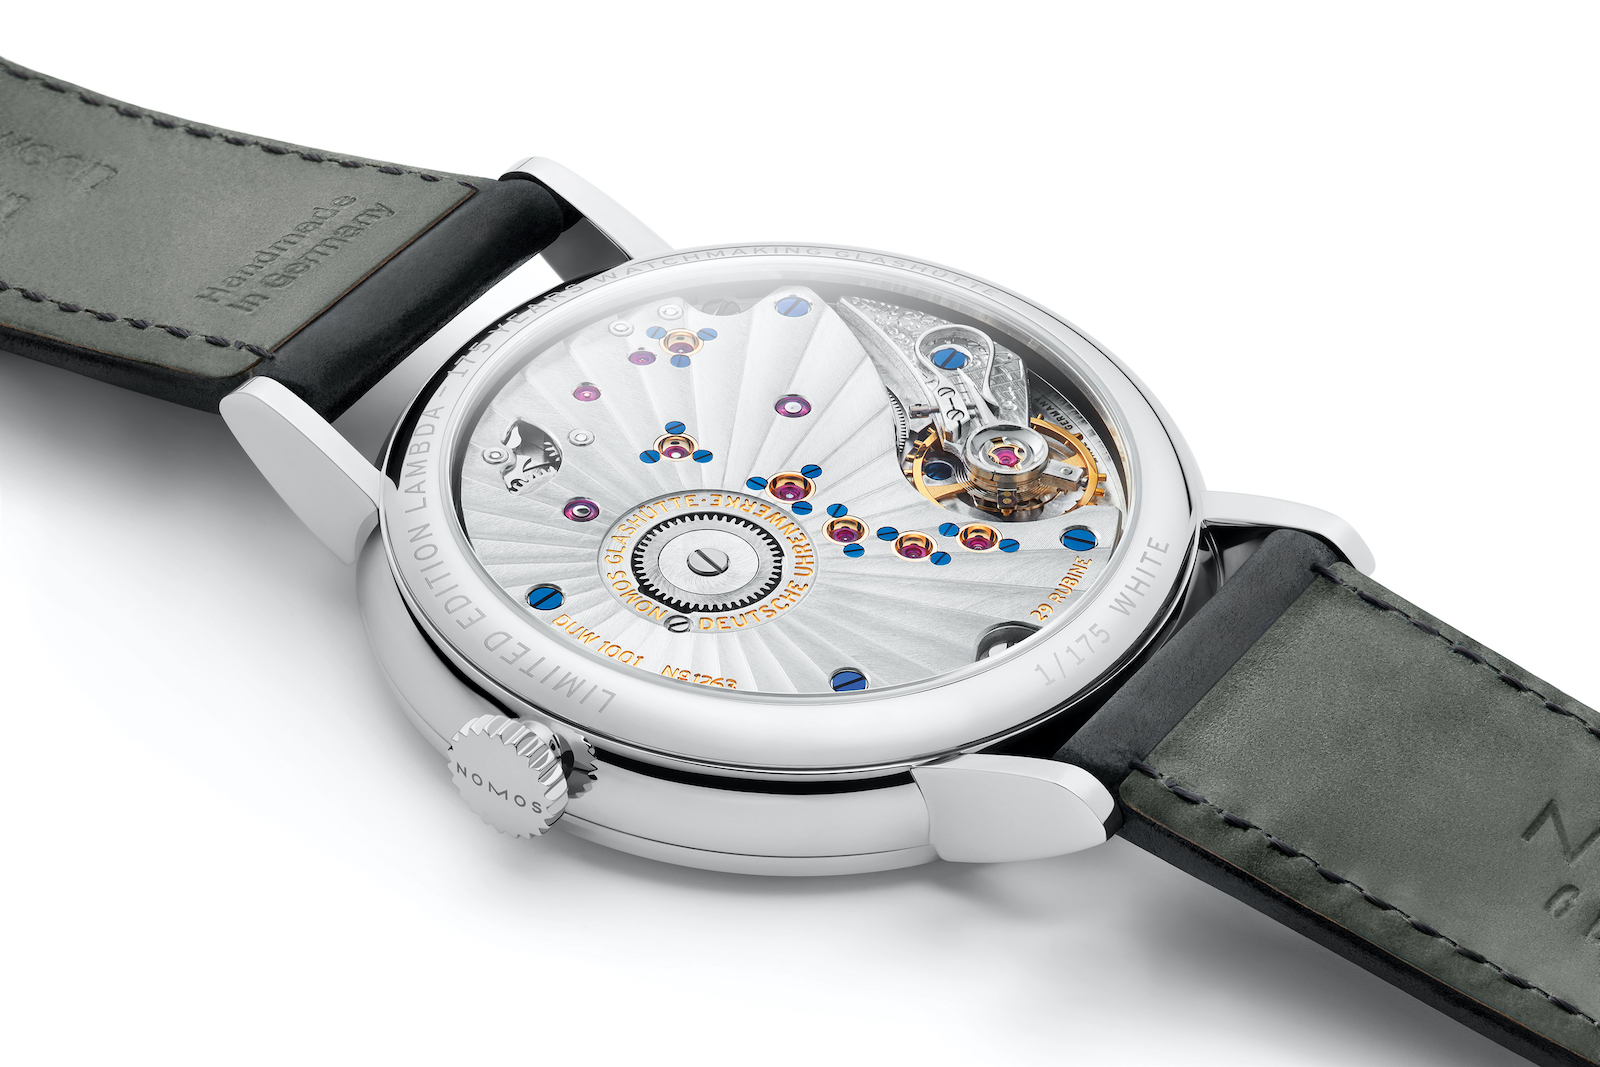 Nomos Lambda 175 Years Watchmaking Glashütte - white caseback